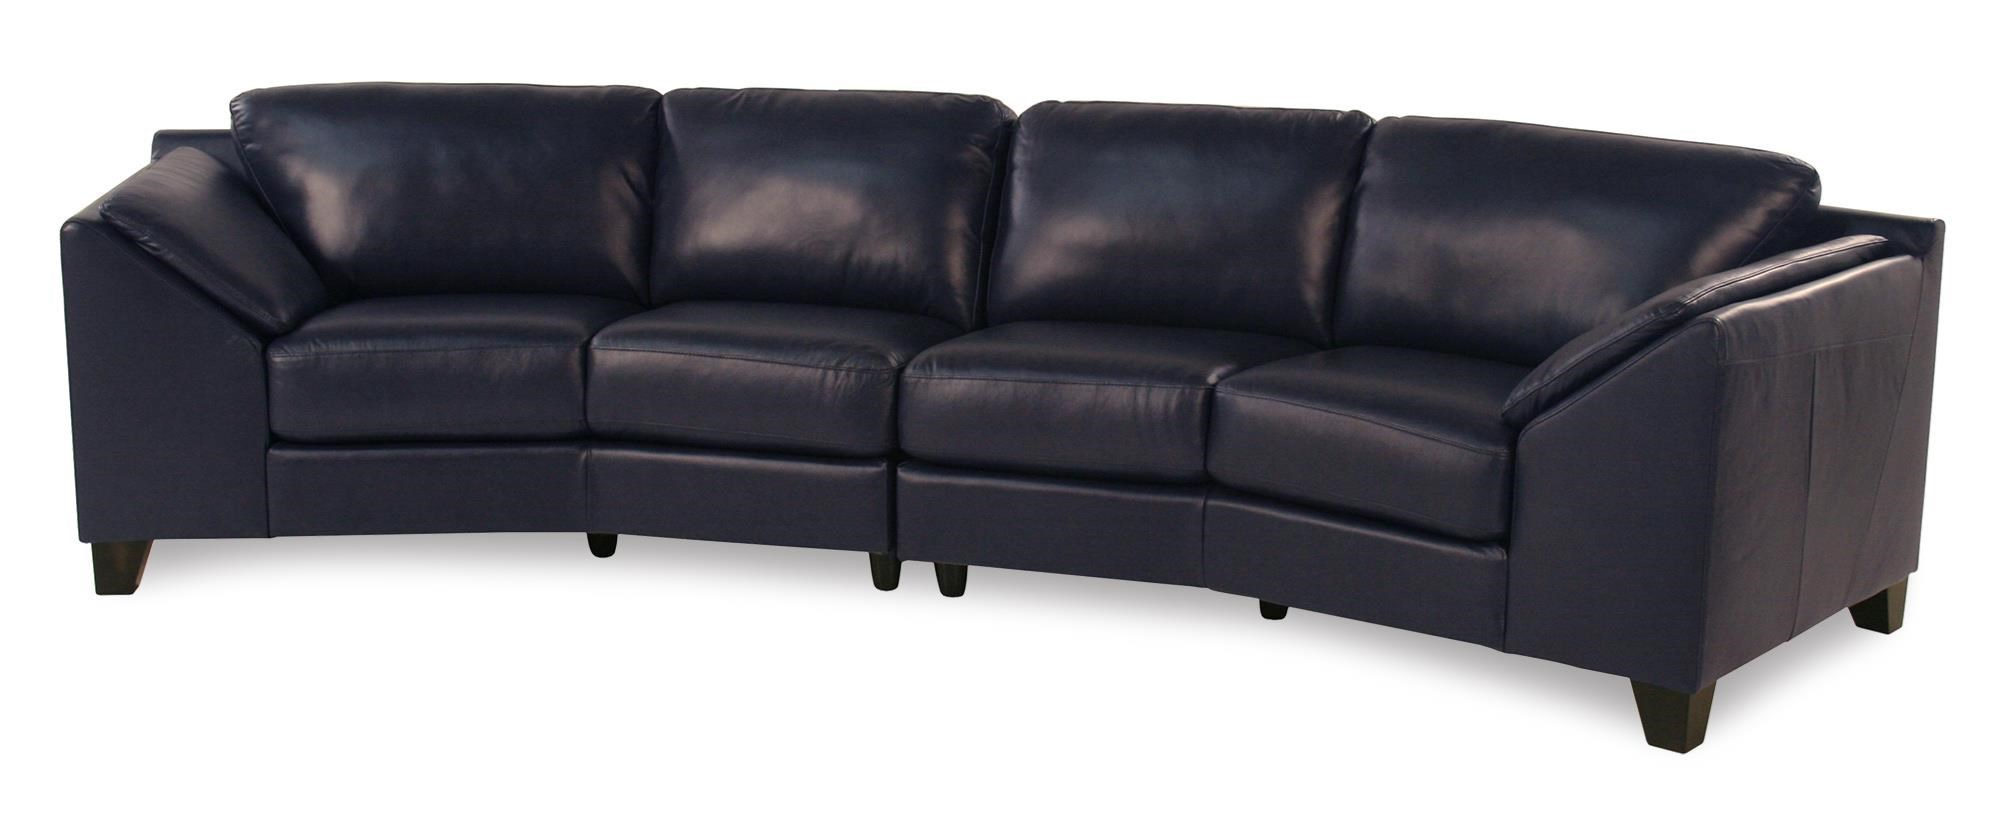 angled sectionals sofas for under 300 regatta contemporary leather sectional sofa rotmans palliser regattaleather